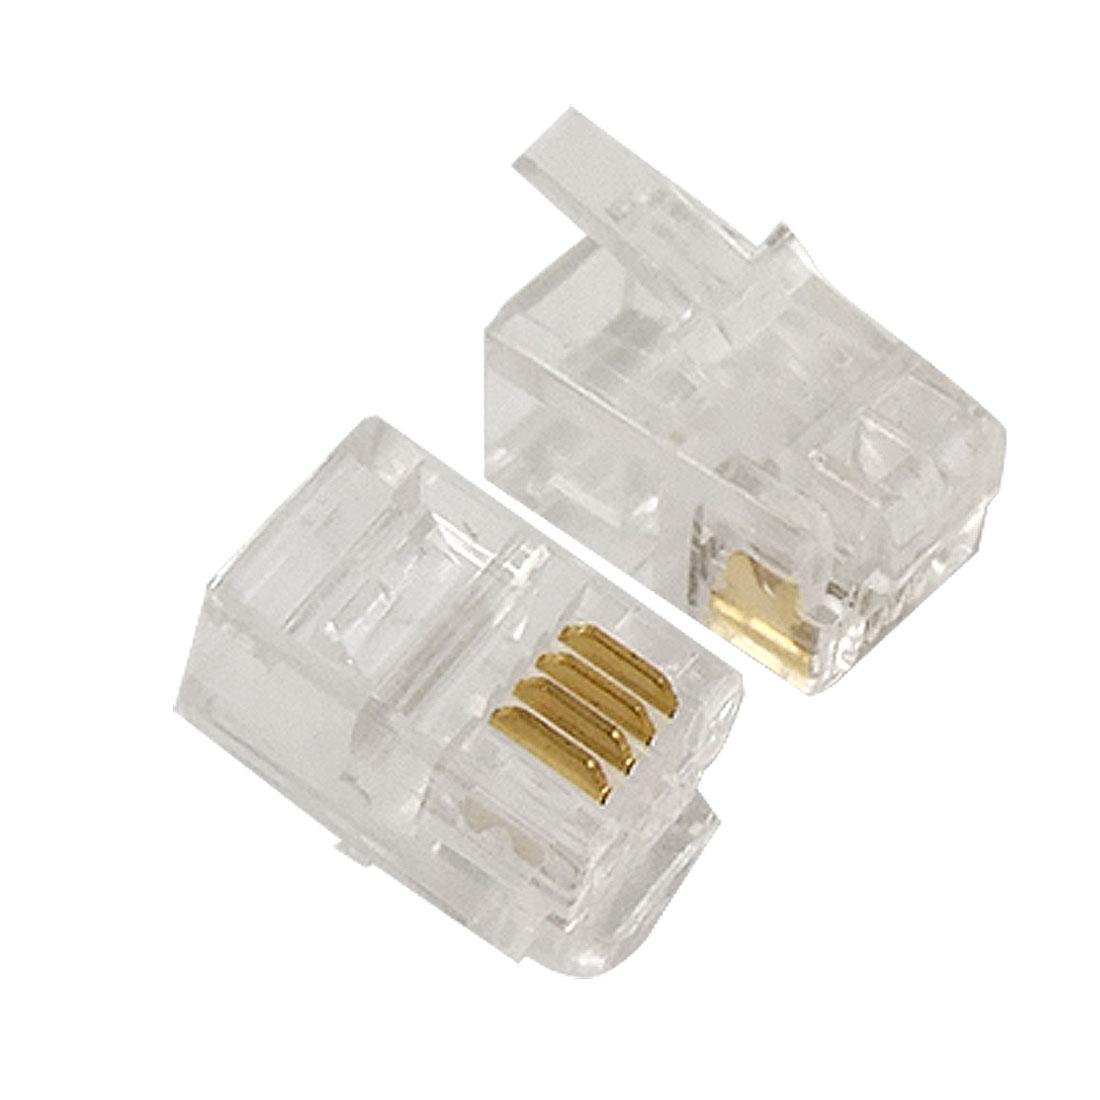 hight resolution of 4 pin rj10 4p4c connector plug for handset cable nvbcu patch cables pc cables and connectors